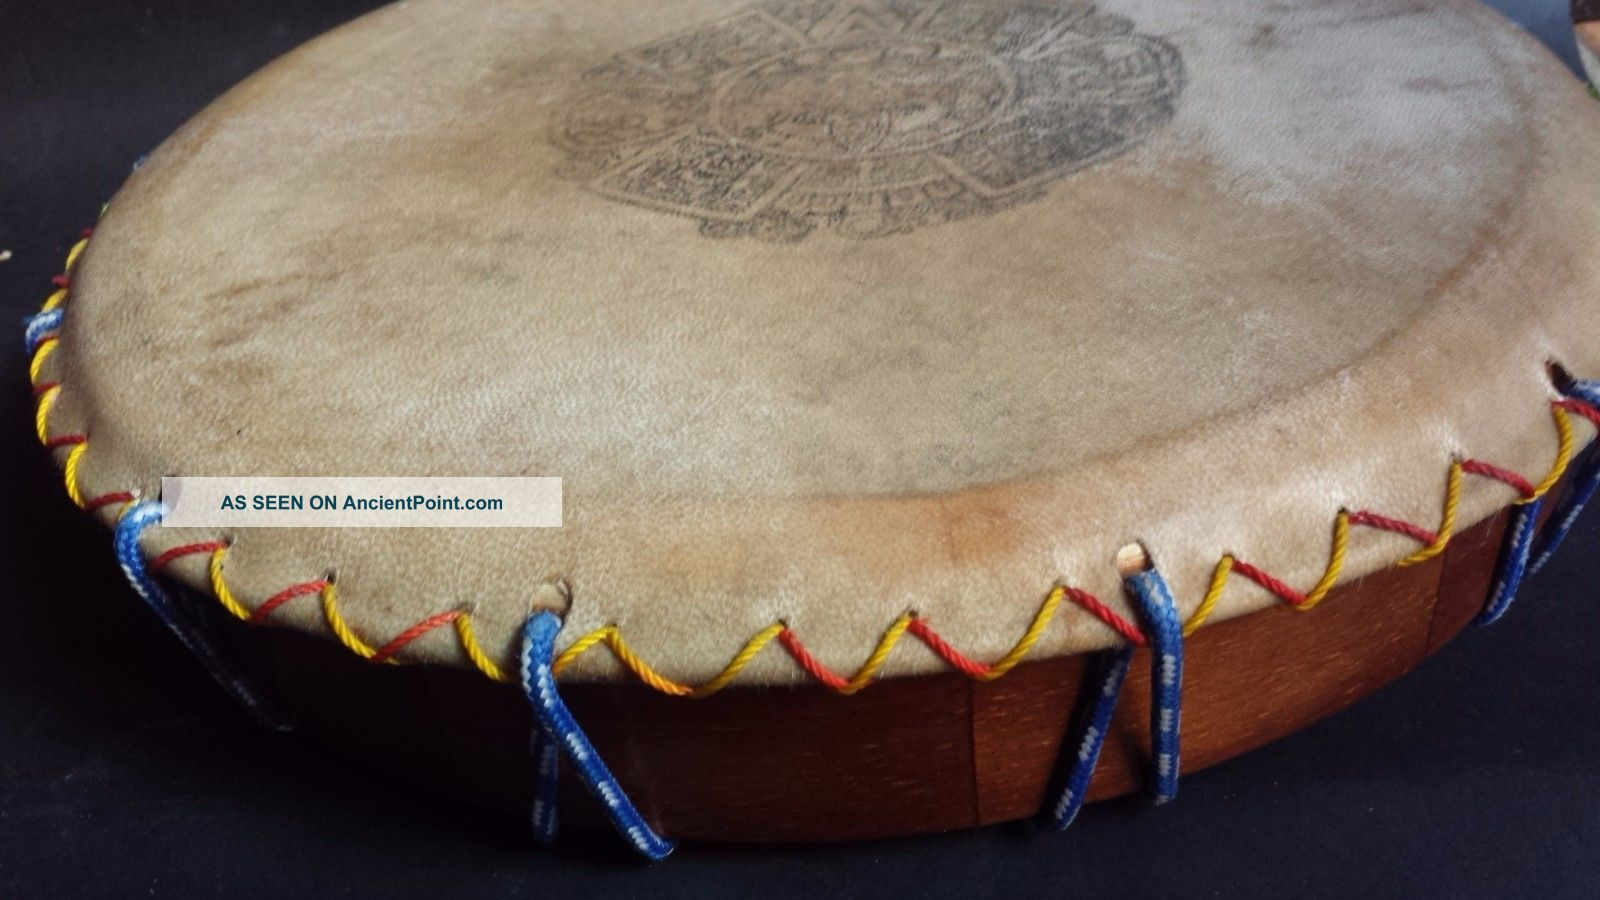 Atzec Shamanic Ayacahuite Wood Drum Mexican Latin Musical Percussion Instrument Percussion photo